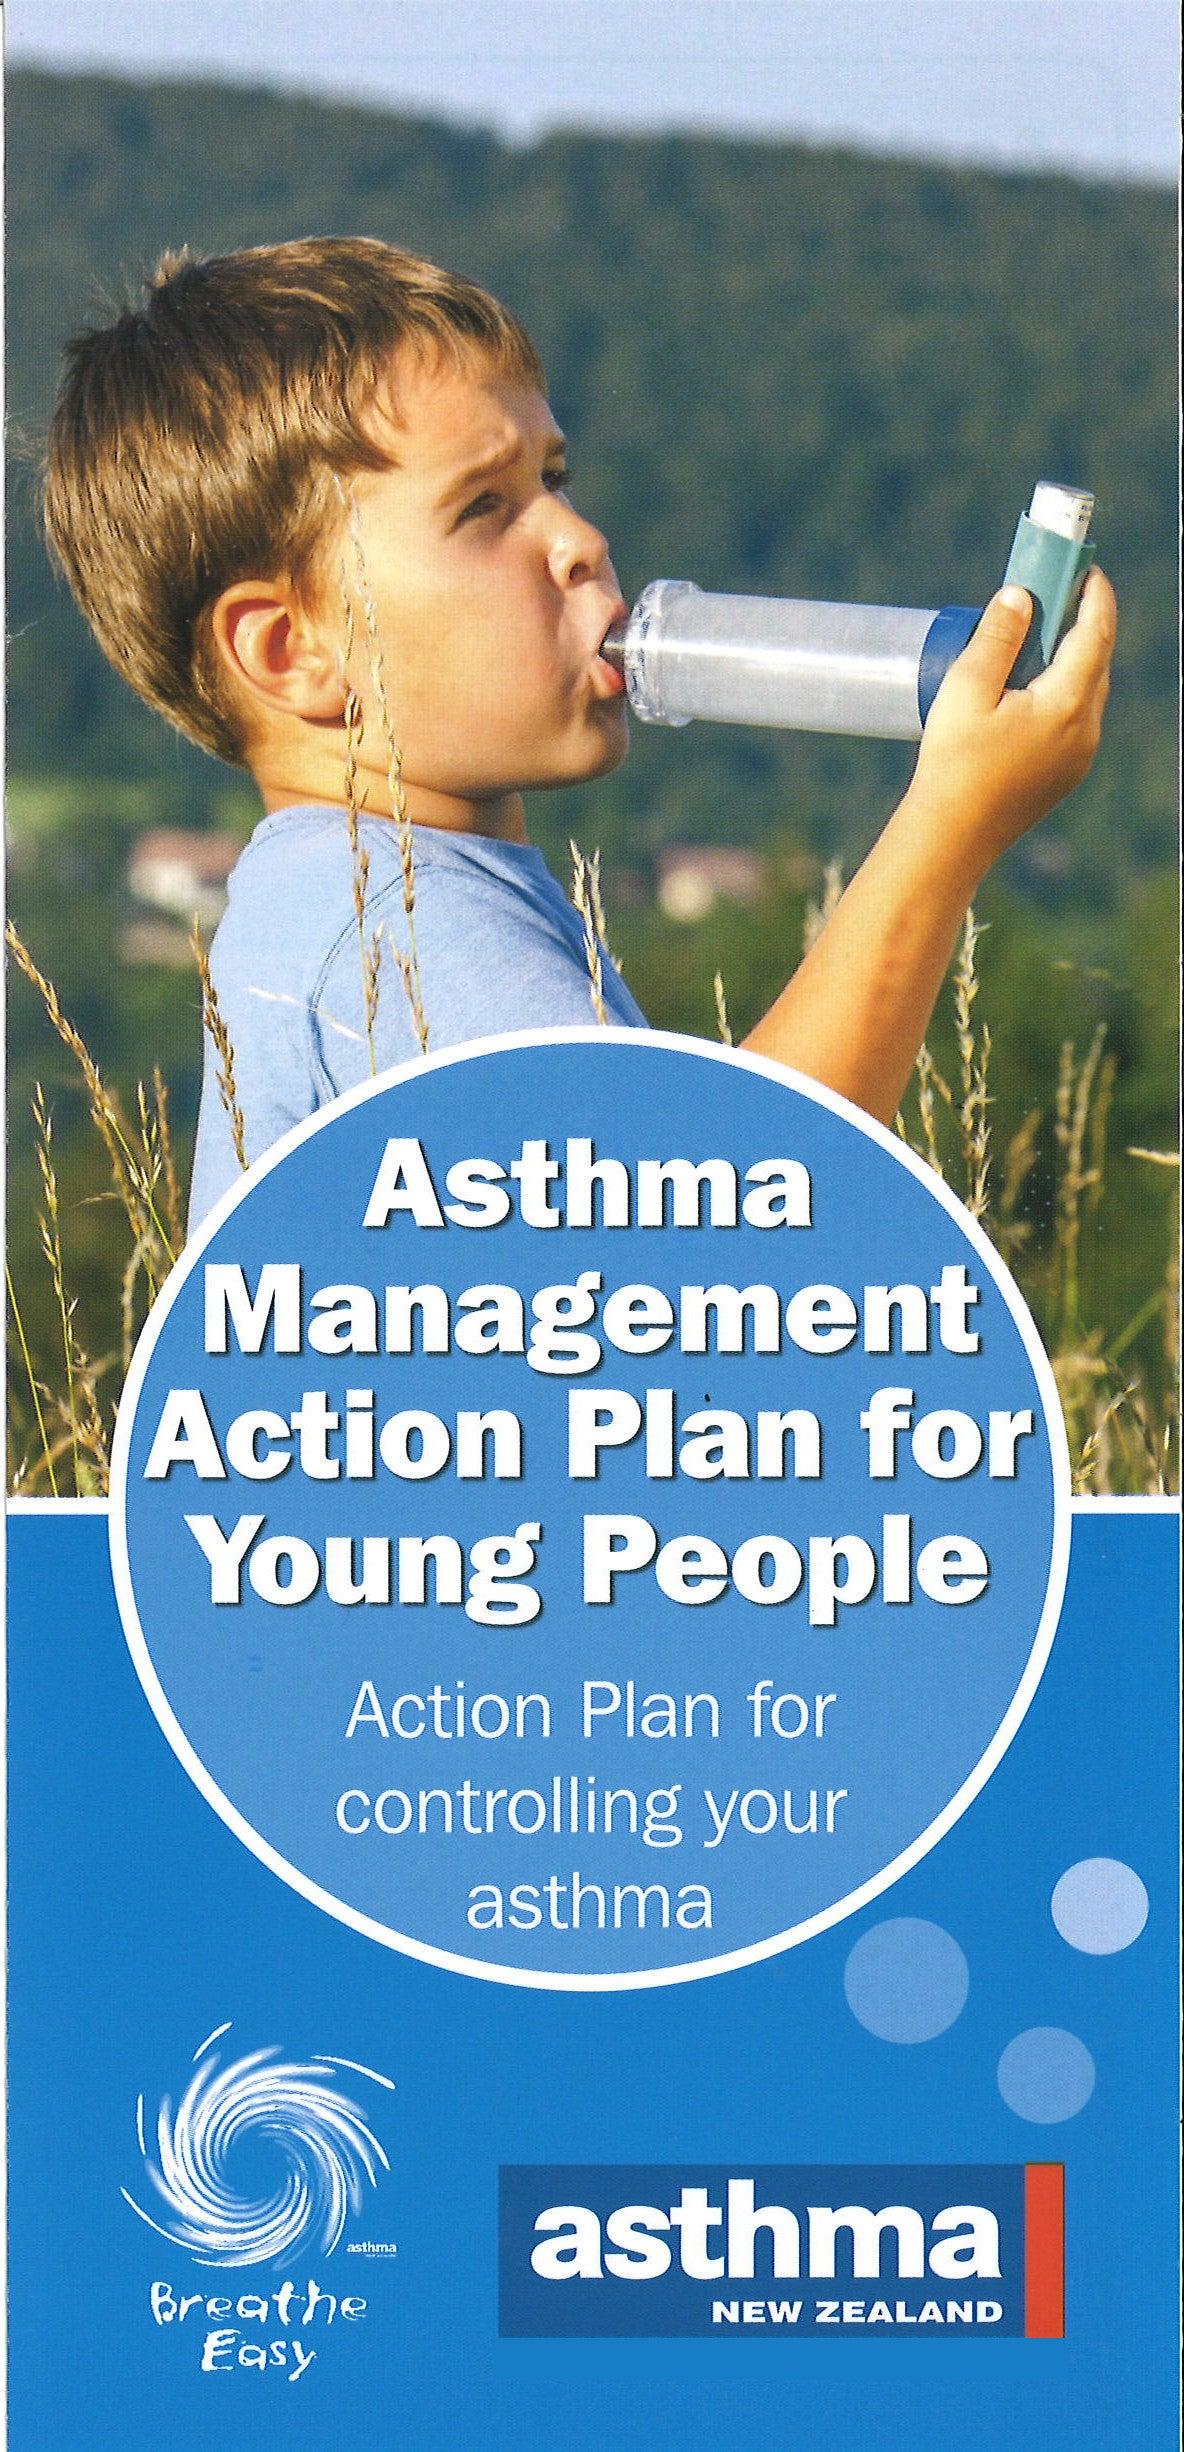 Action Plan for Young